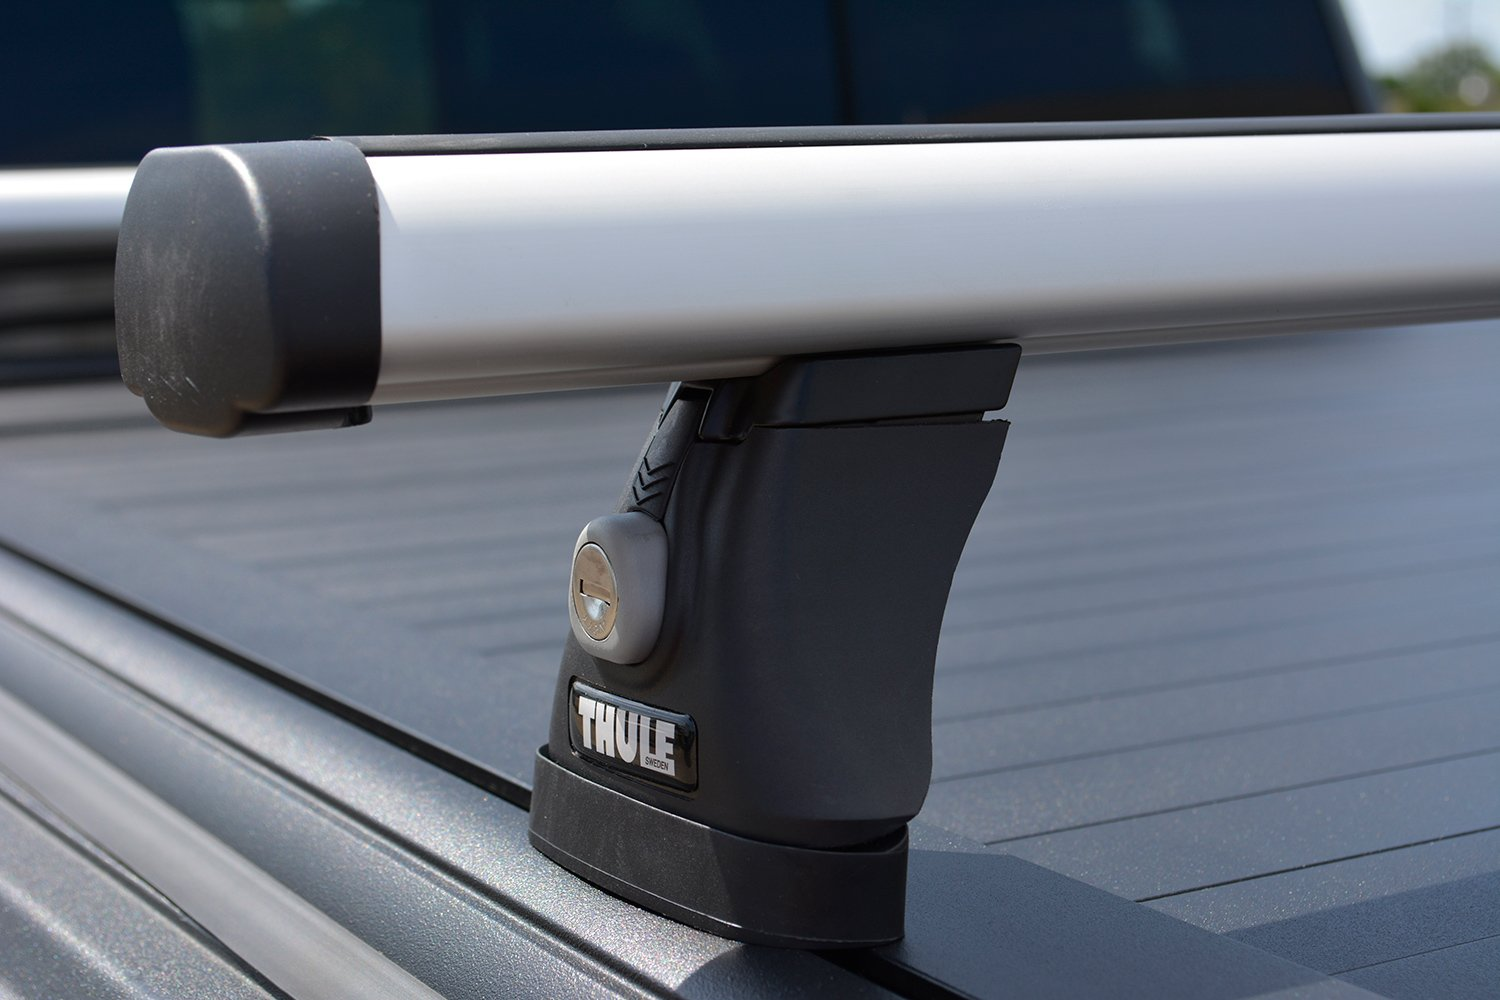 Thule Bike Rack >> Pace-Edwards Multi-Sport Rack System by Thule - For UltraGroove Covers